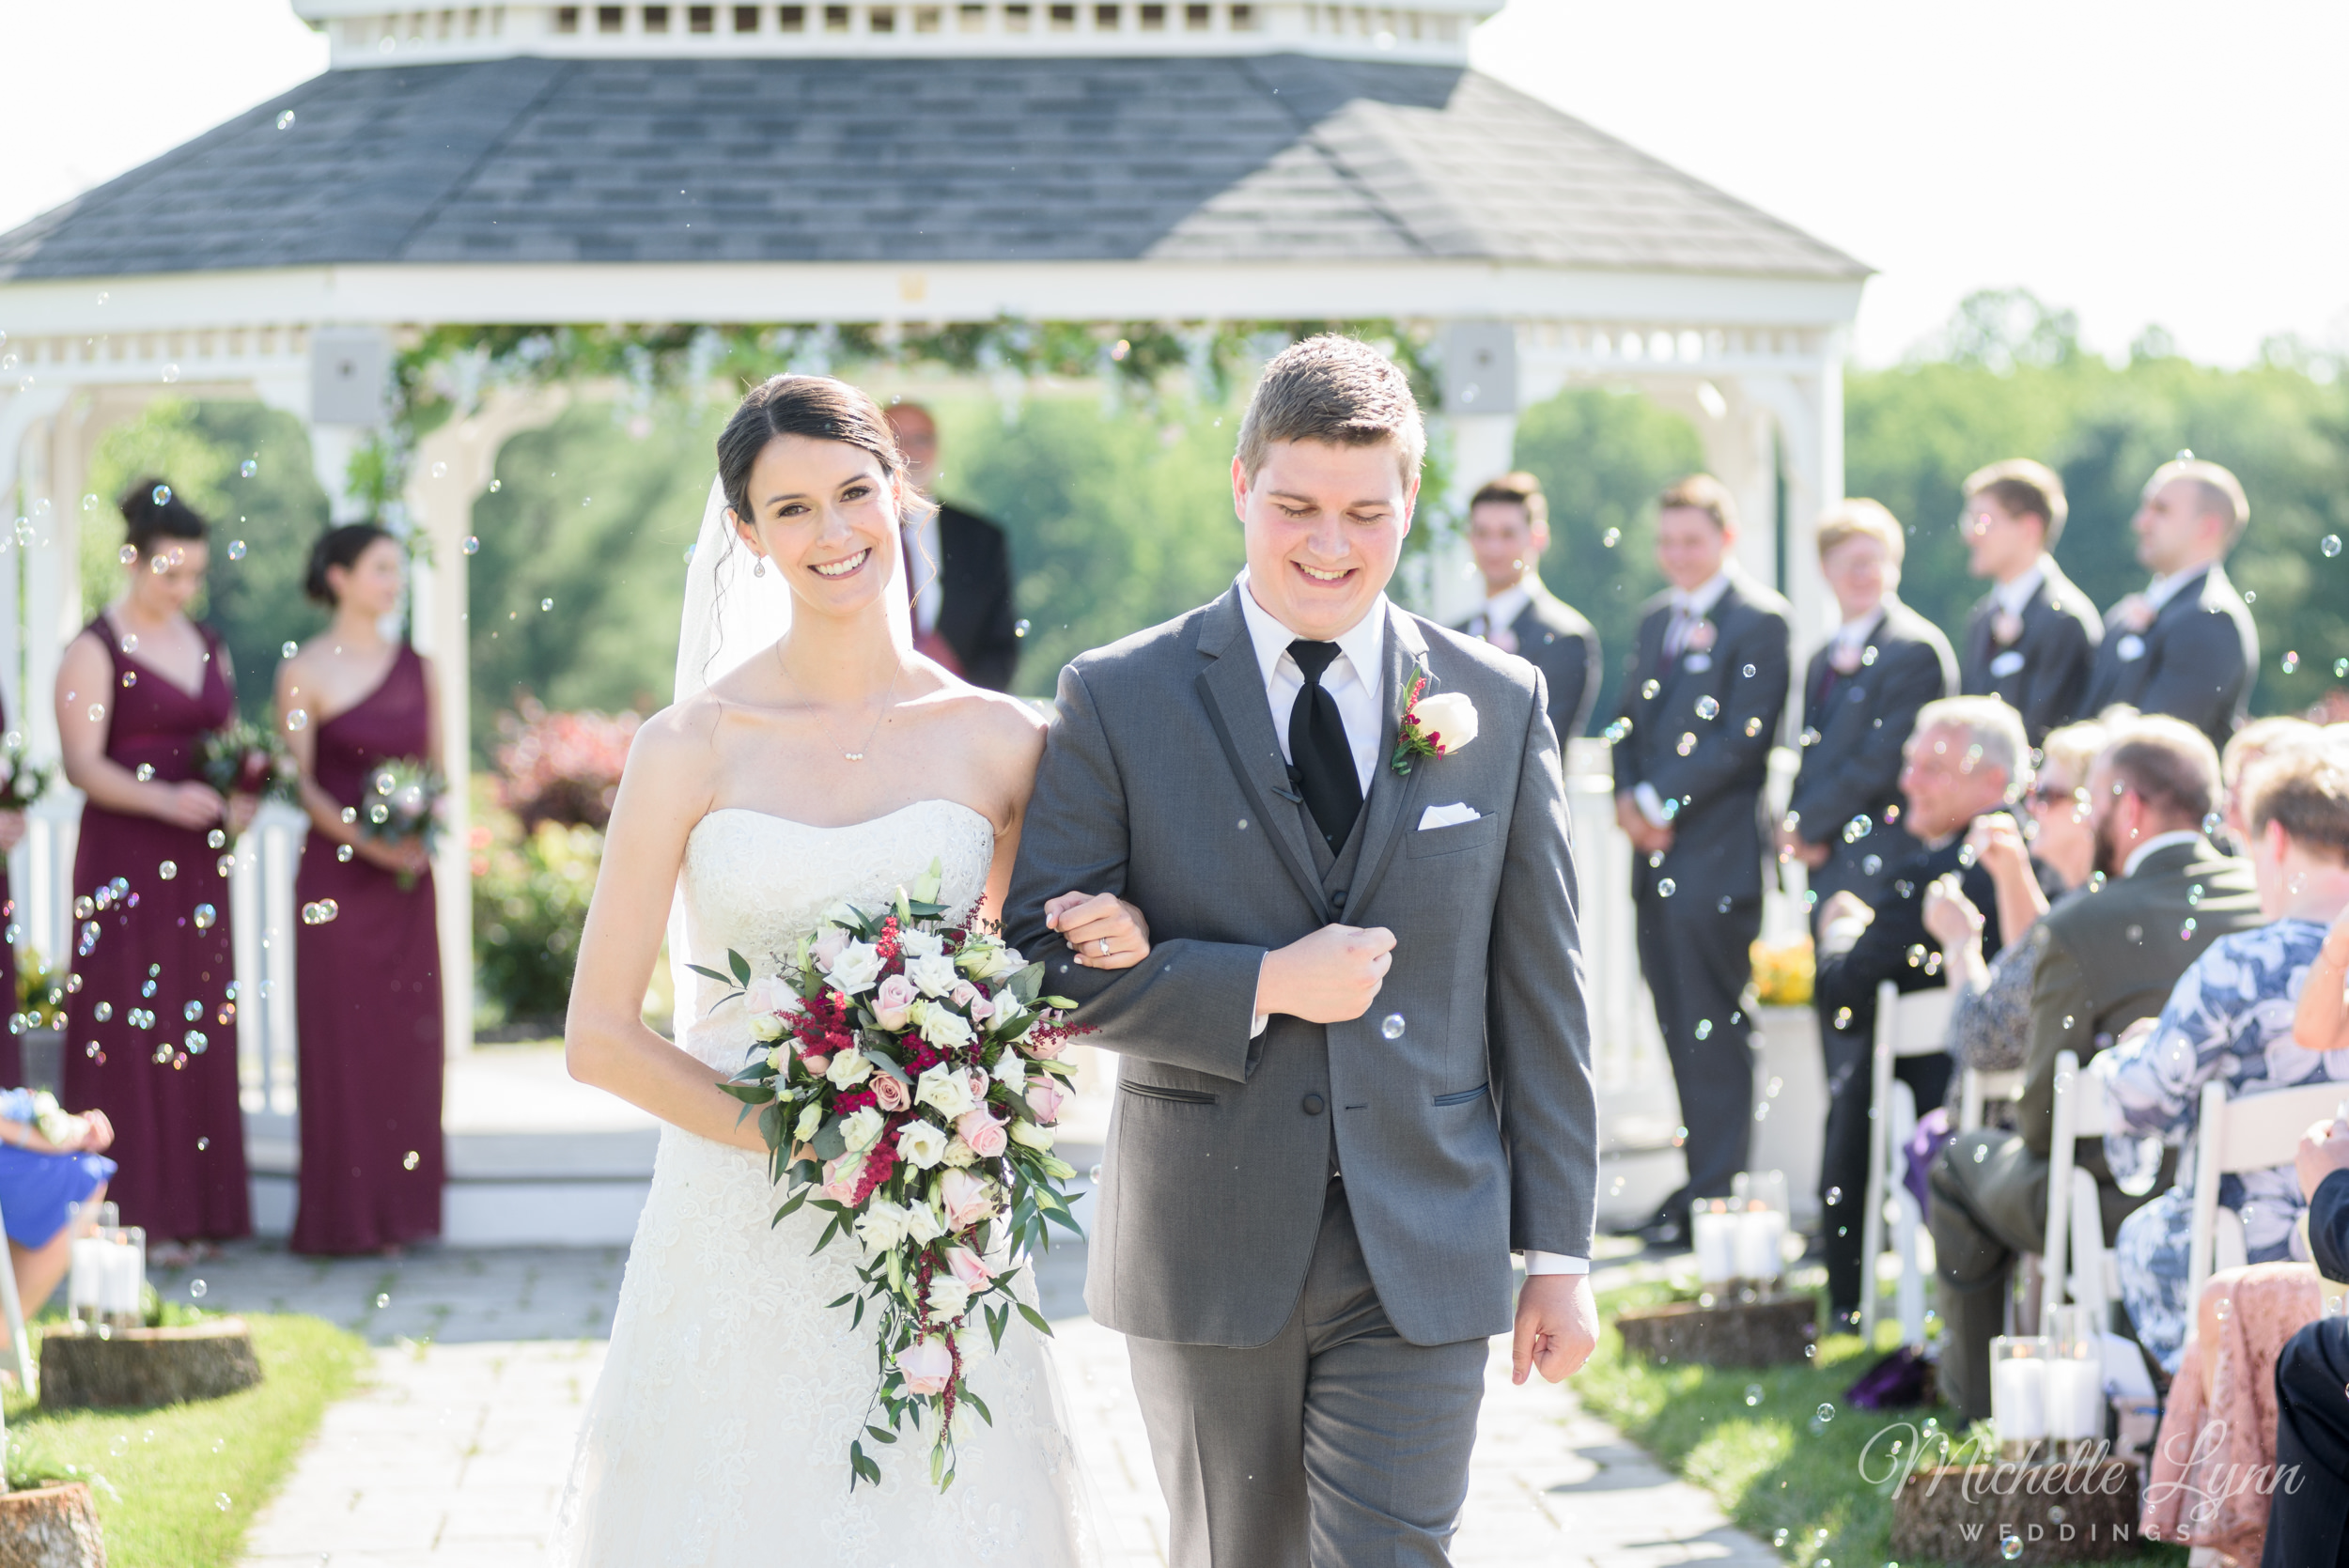 mlw-loft-at-sweet-water-country-club-wedding-photography-53.jpg